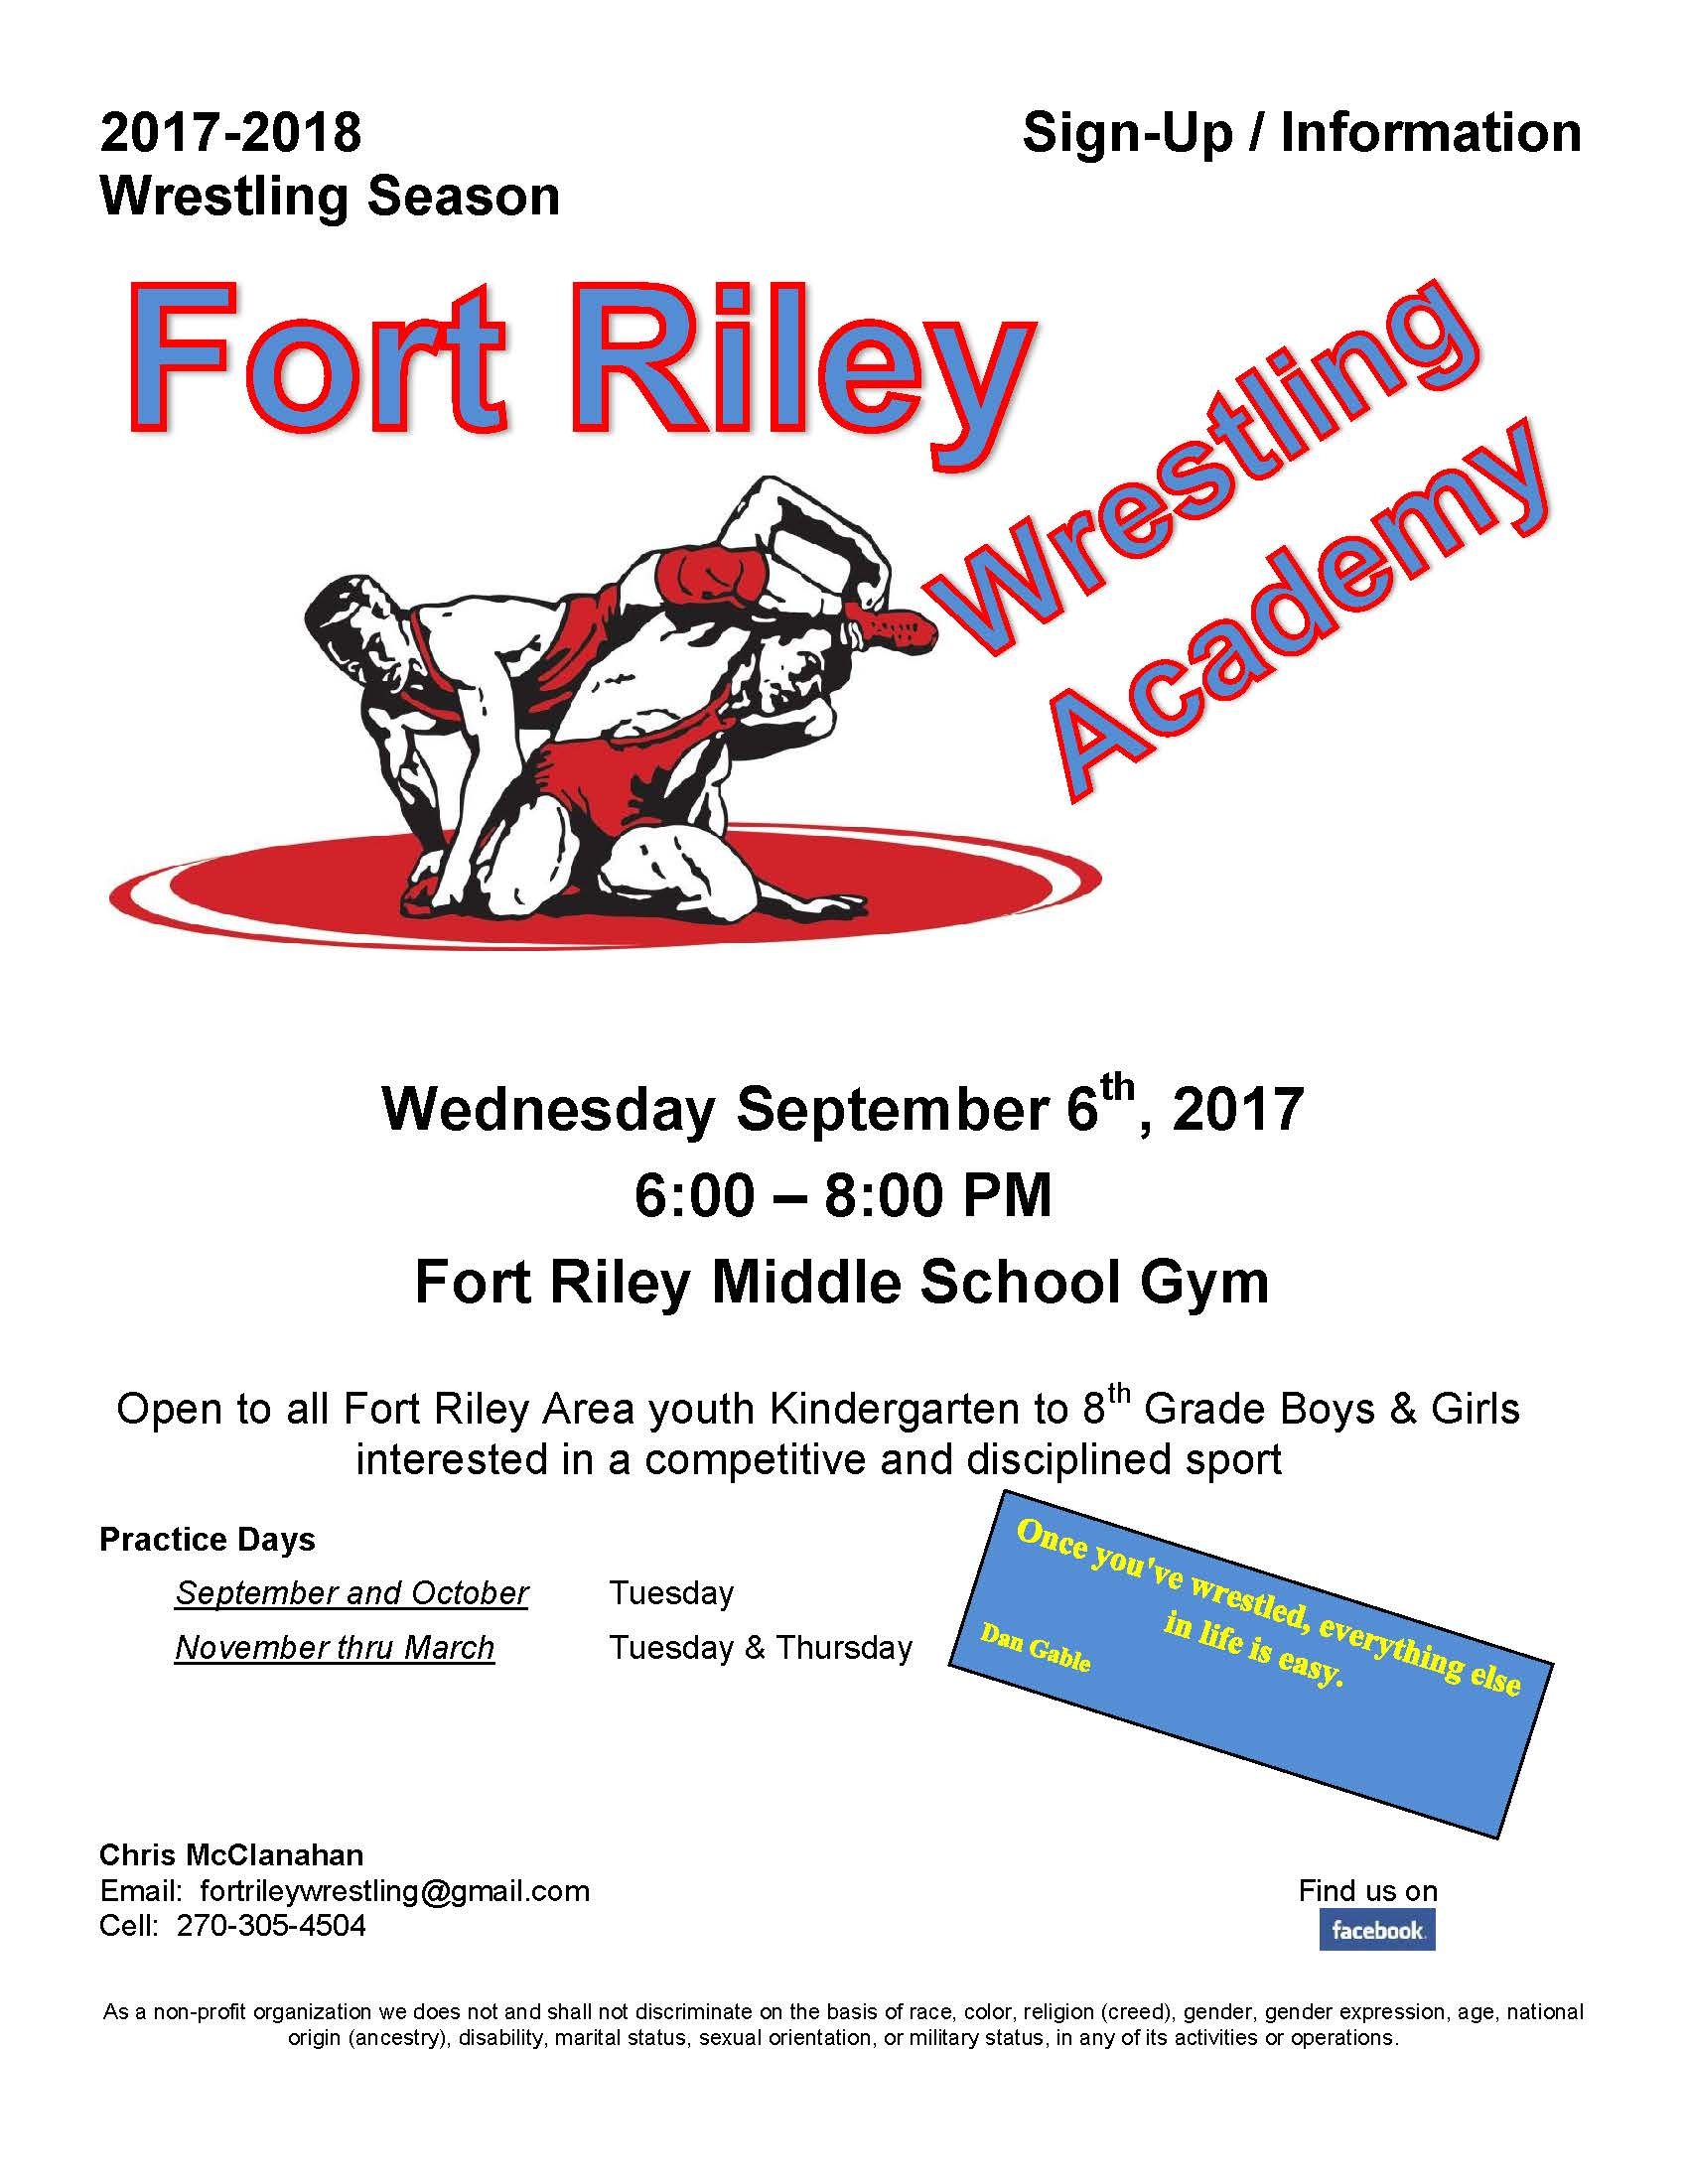 Fort Riley Wrestling Flyer